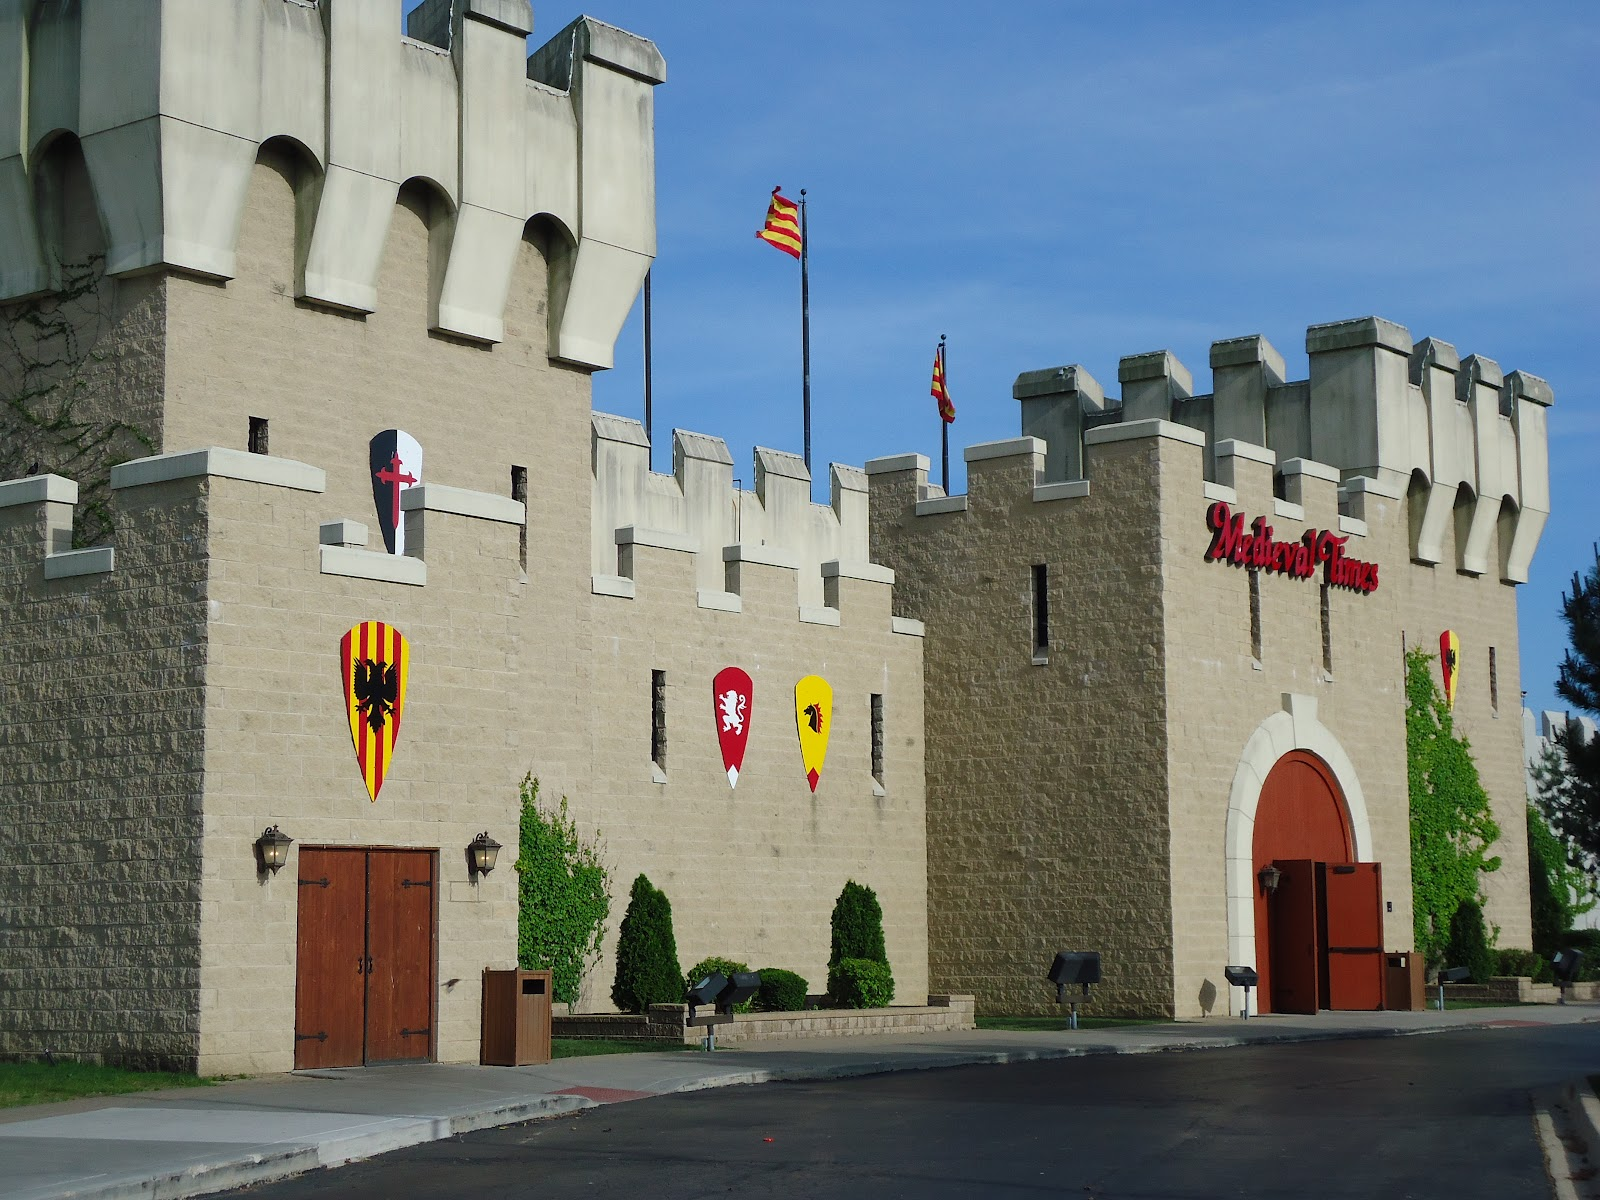 Medieval Times Dinner & Tournament - Chicago - N Roselle Rd, Schaumburg, Illinois - Rated based on 5, Reviews